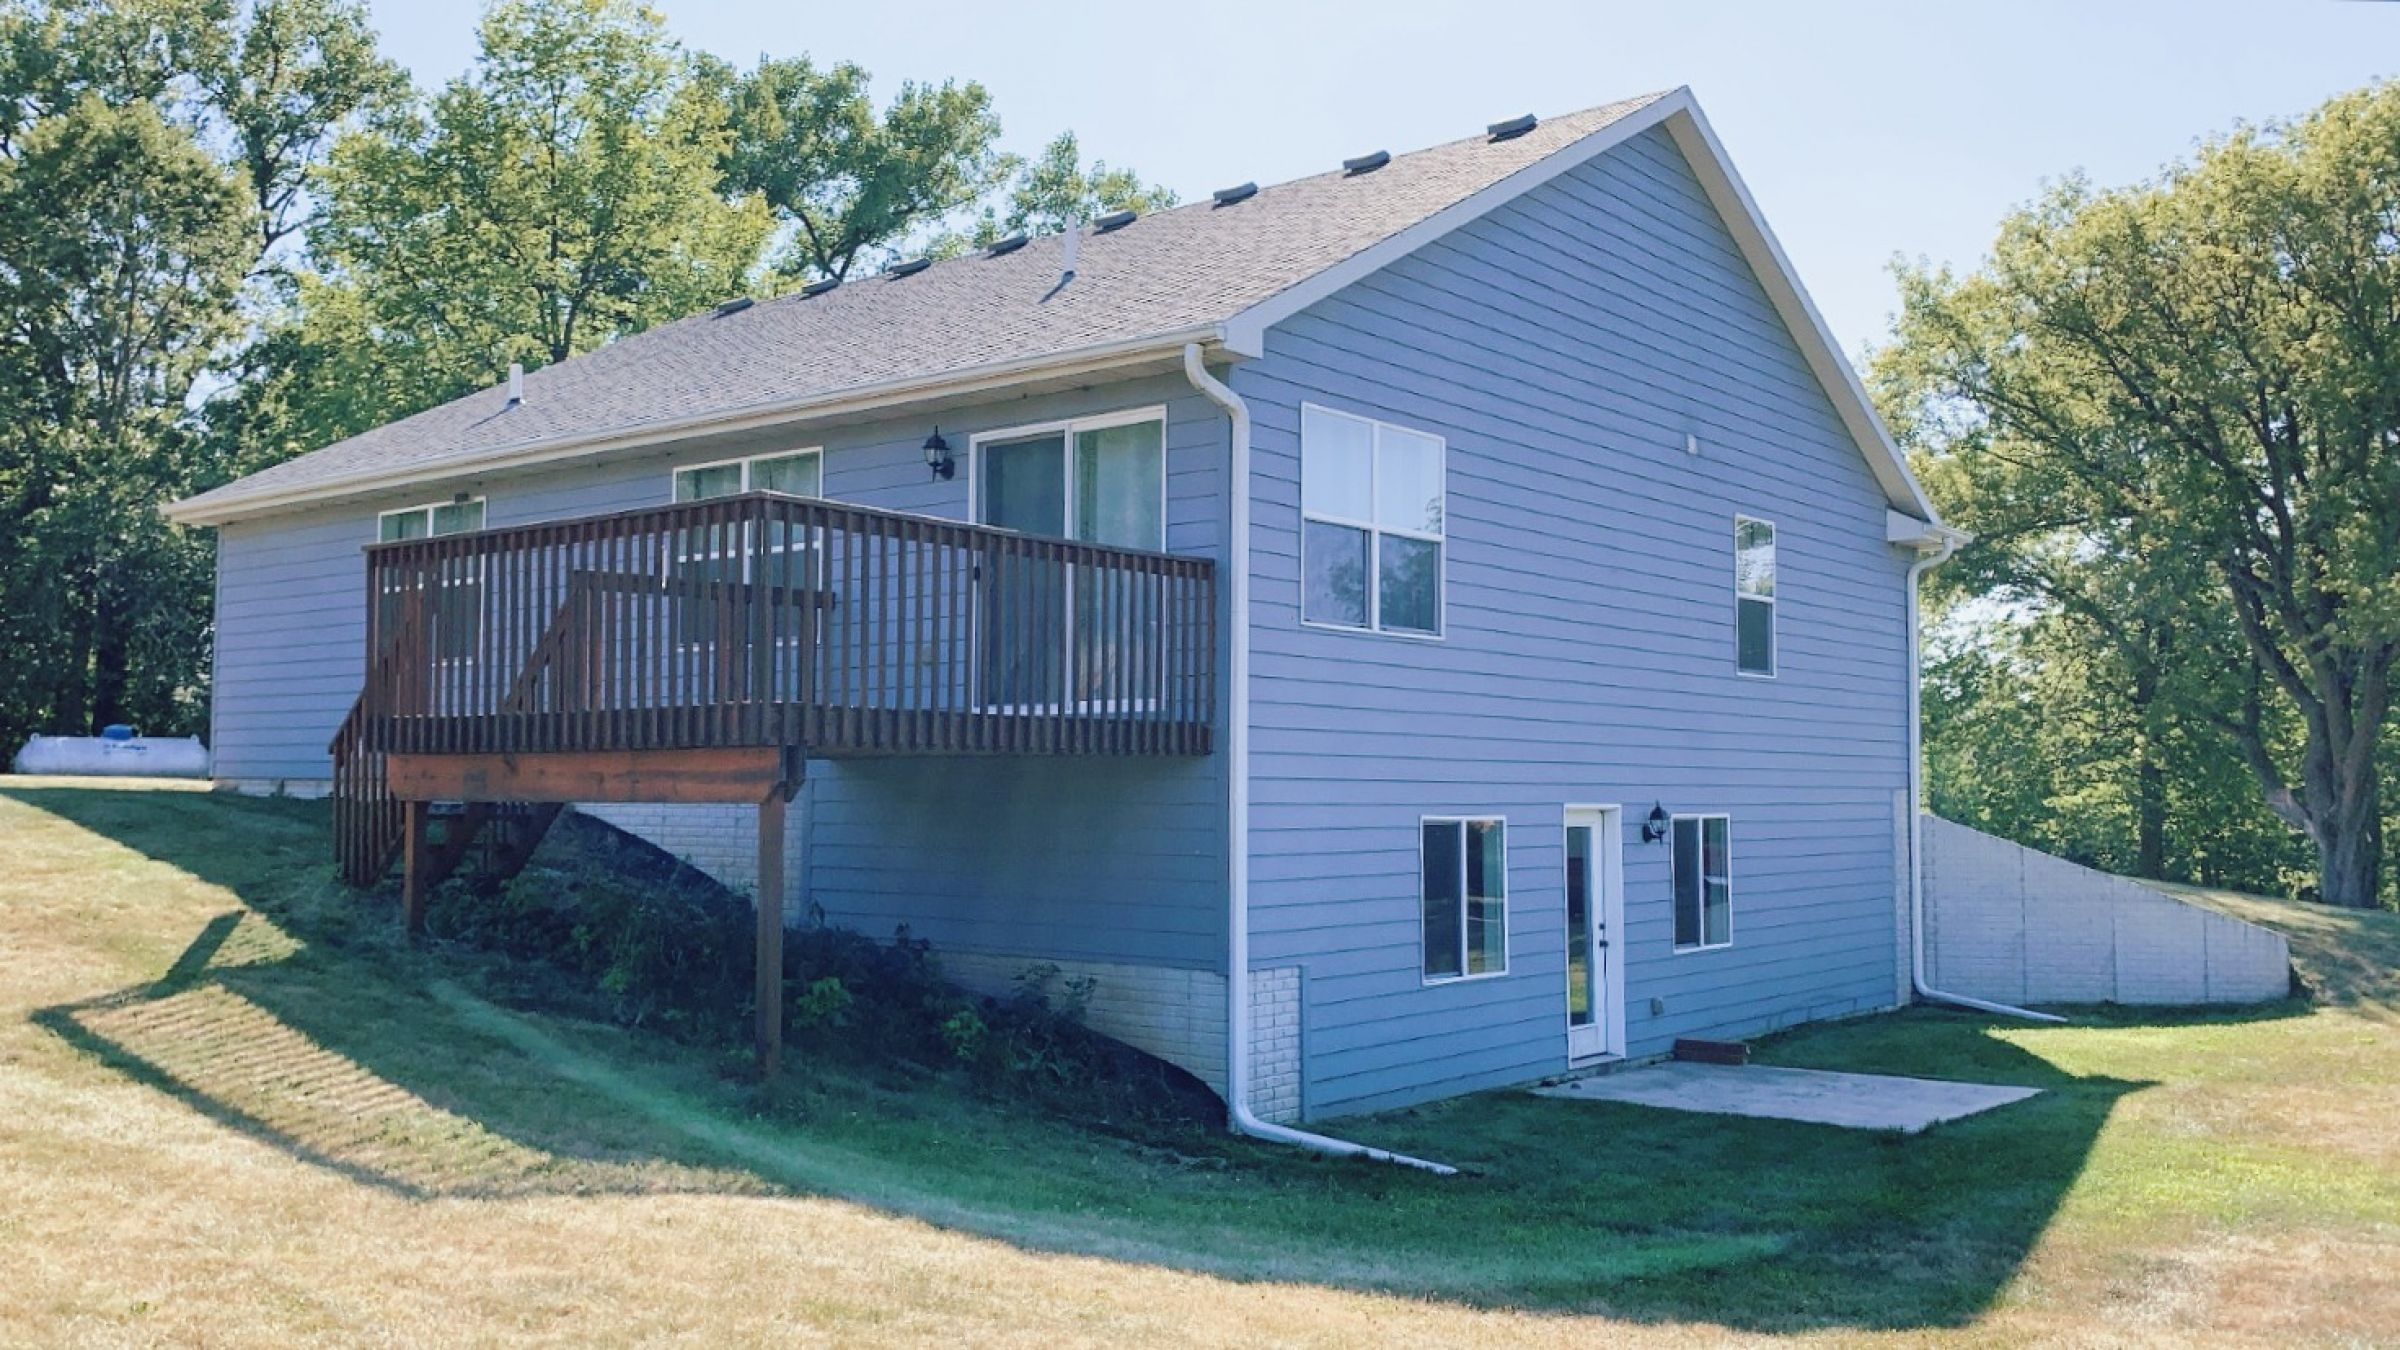 residential-madison-county-iowa-5-acres-listing-number-15408-4-2021-03-11-160727.jpg